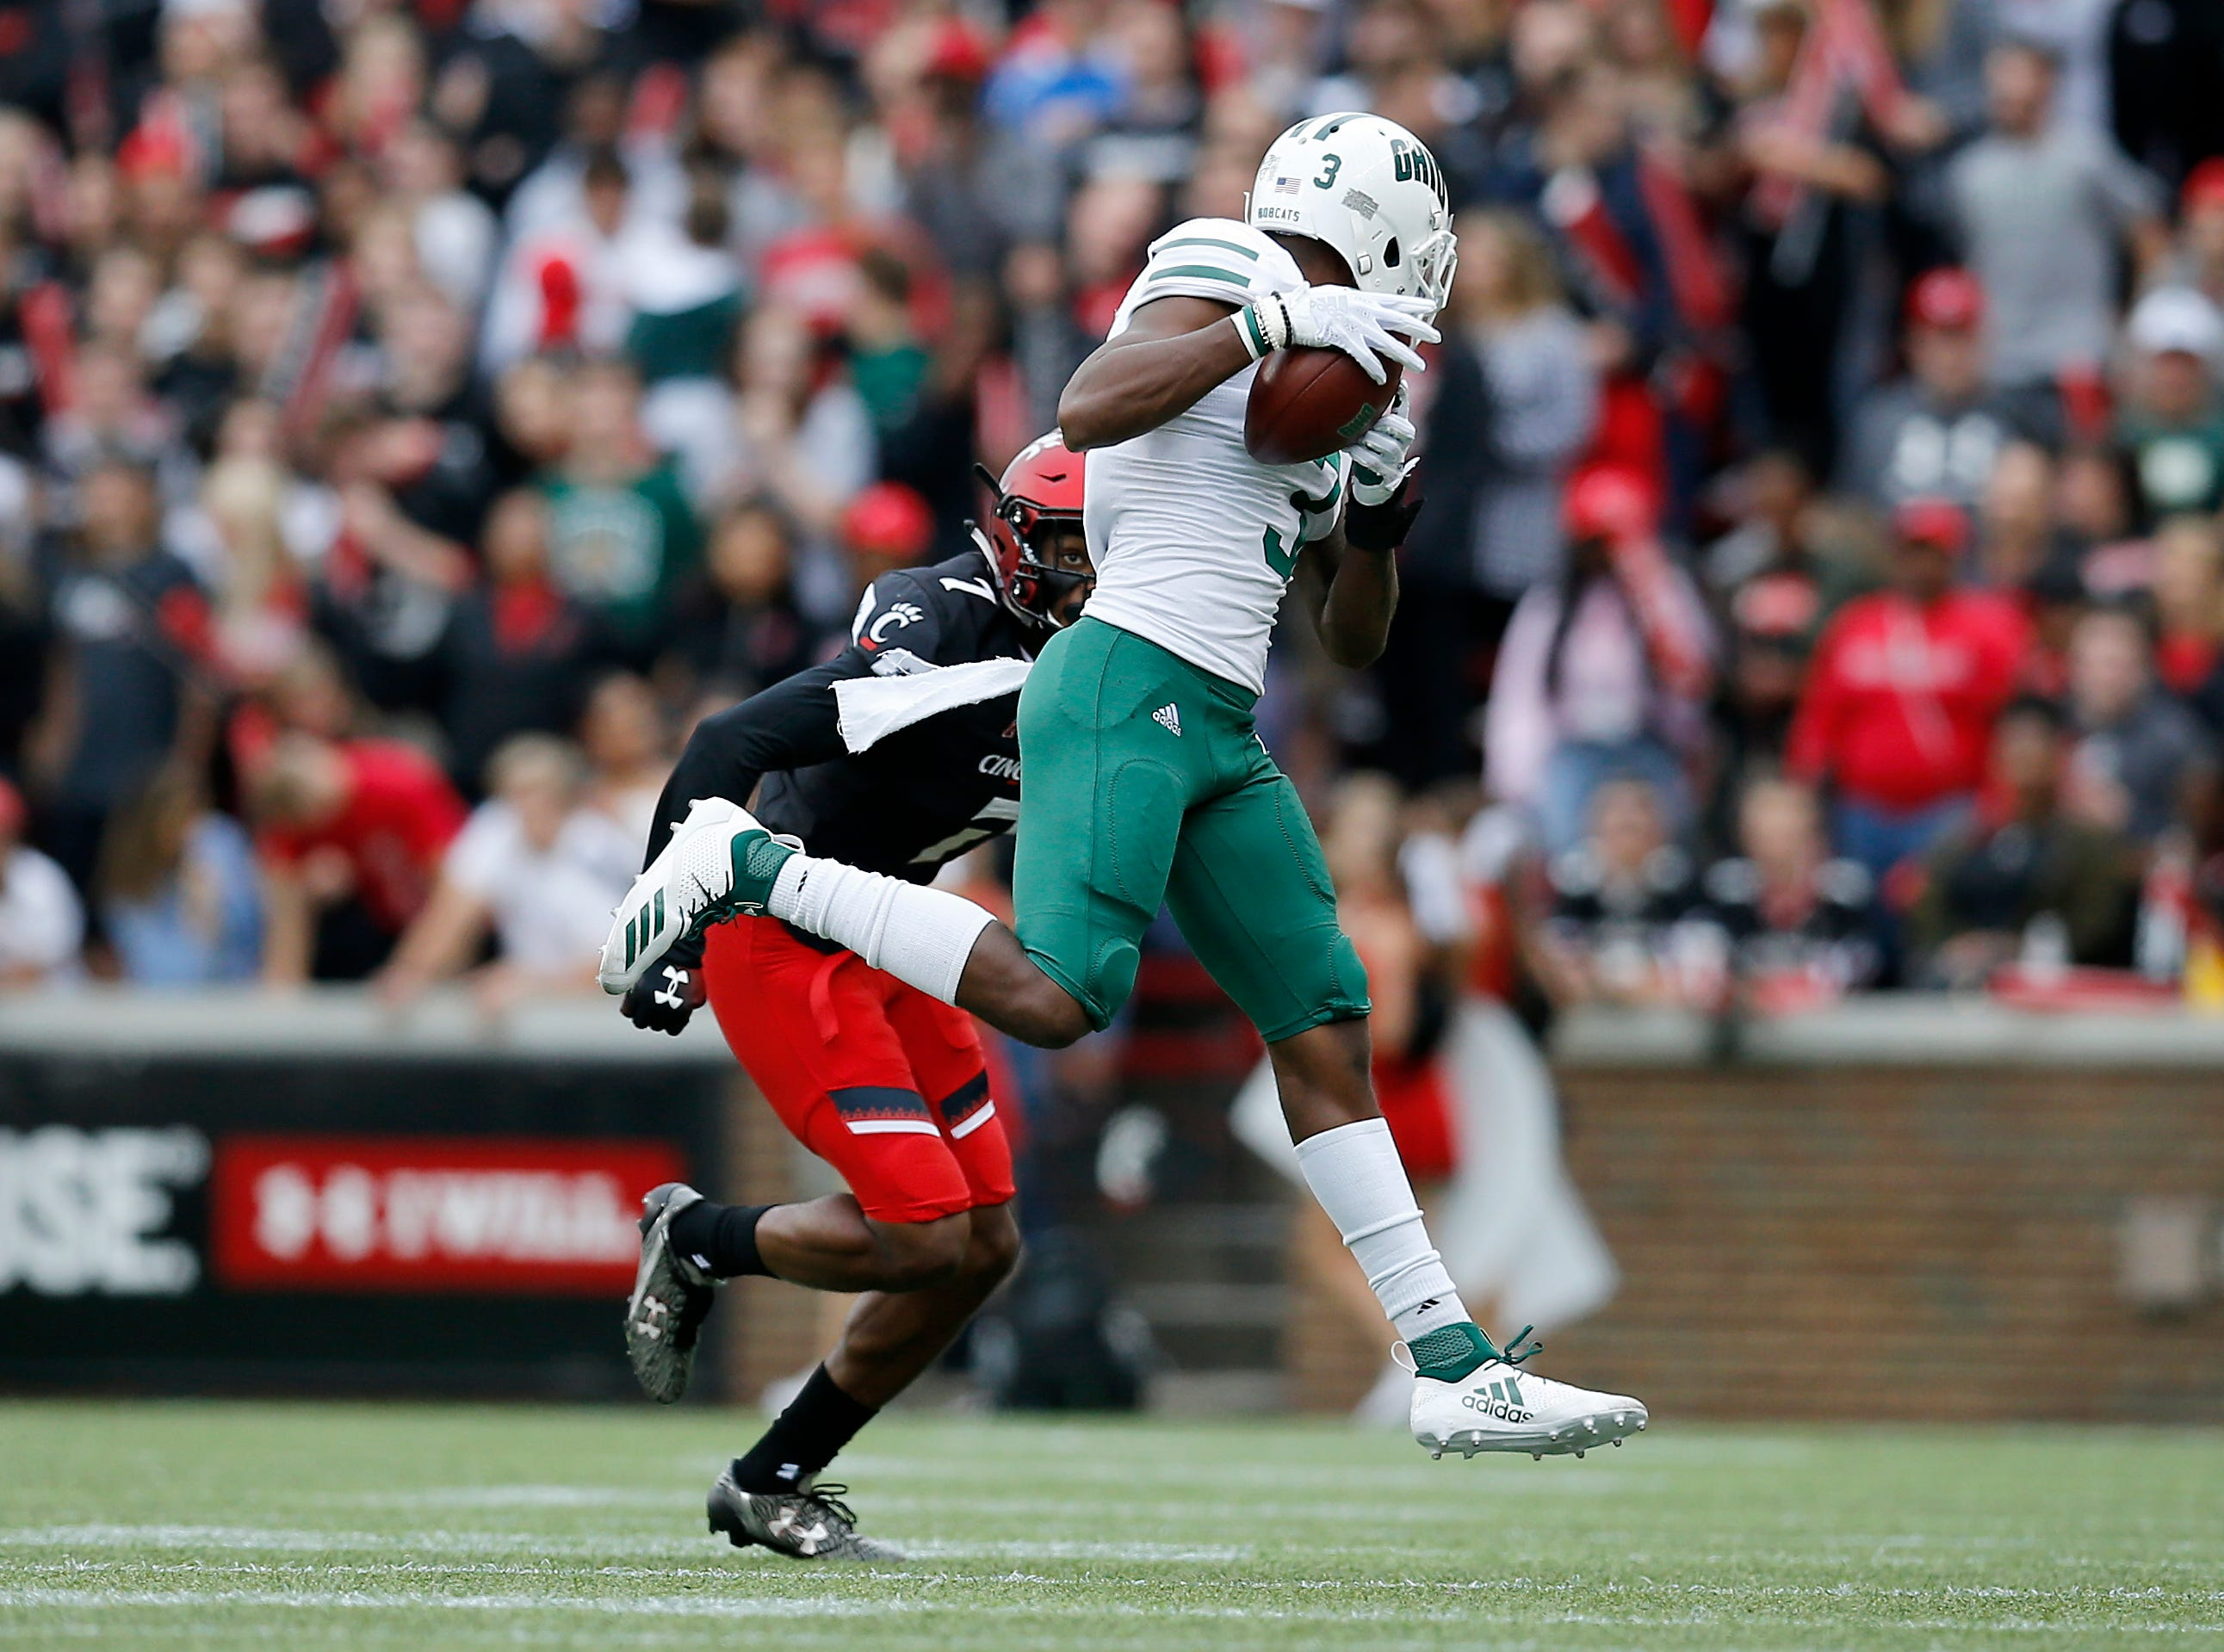 Ohio Bobcats wide receiver Cameron Odom (3) makes a catch ahead of Cincinnati Bearcats cornerback Coby Bryant (7) in the second quarter of the NCAA football game between the Cincinnati Bearcats and the Ohio Bobcats at Nippert Stadium on the University of Cincinnati campus in Cincinnati on Saturday, Sept. 22, 2018. The Bobcats led 24-7 at halftime.